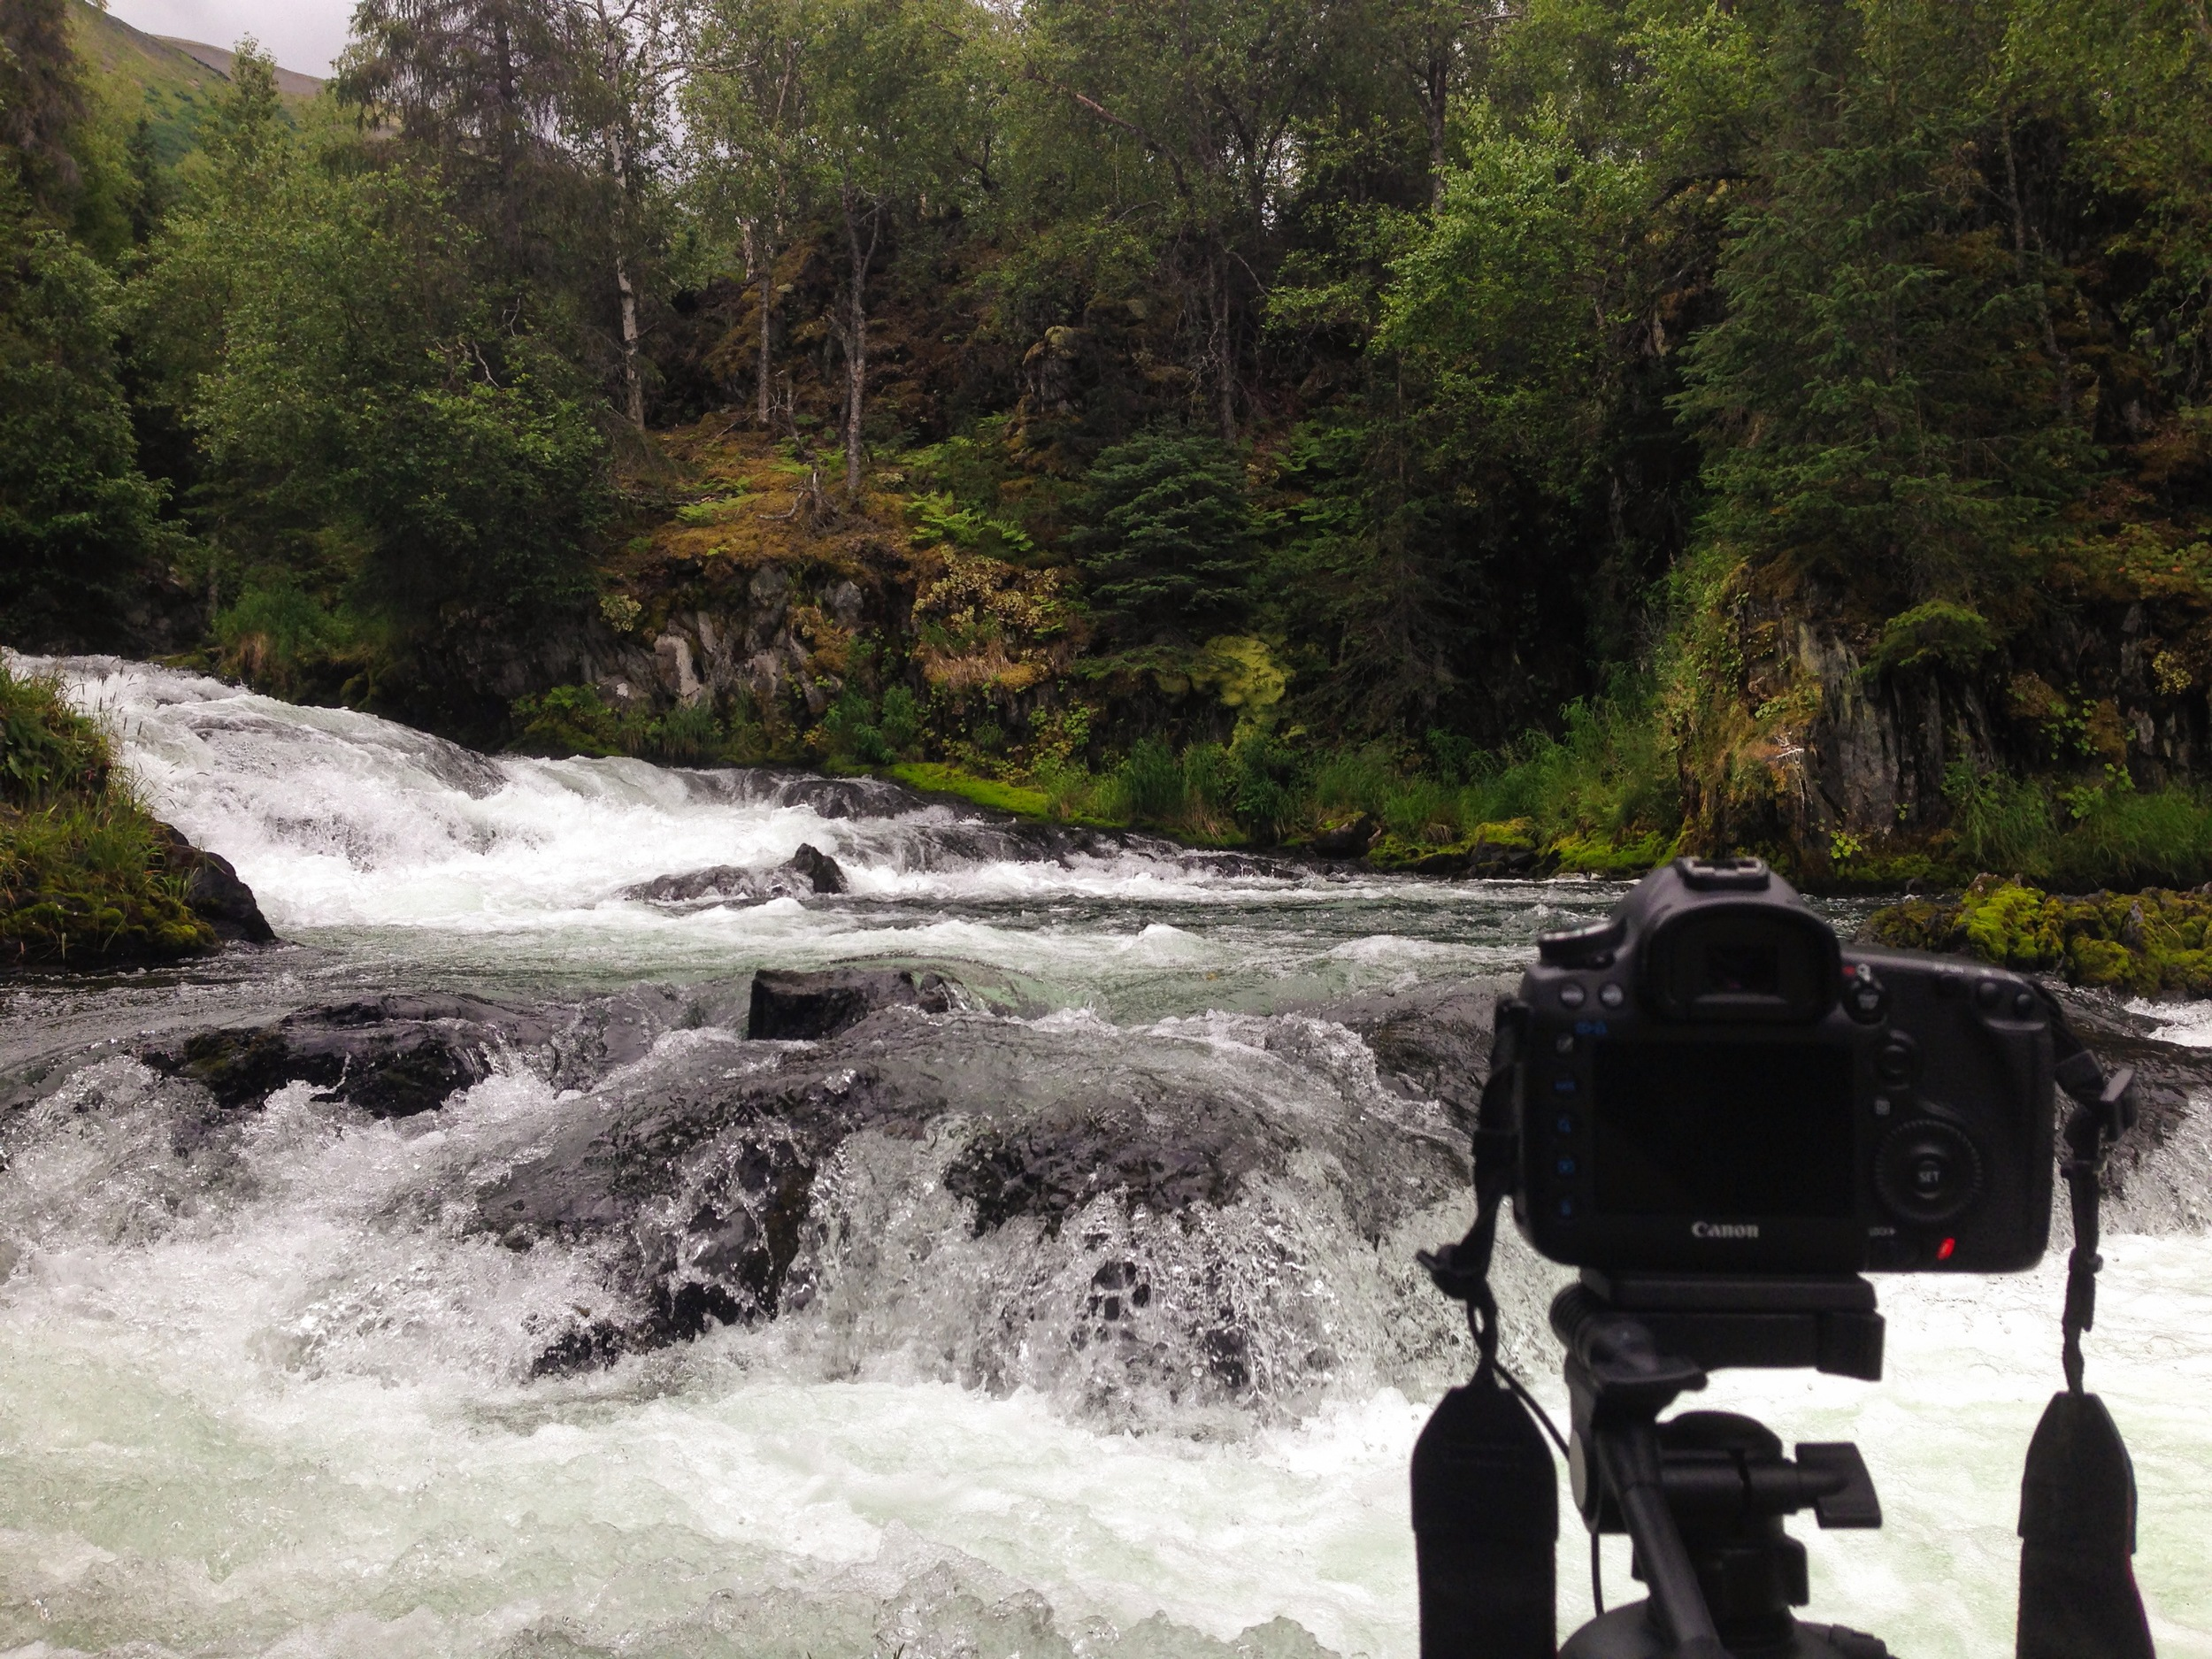 Tyler films spawning salmon on the Russian River while Brian looksfor someone to ridethe rapids with himon the tandem bike.